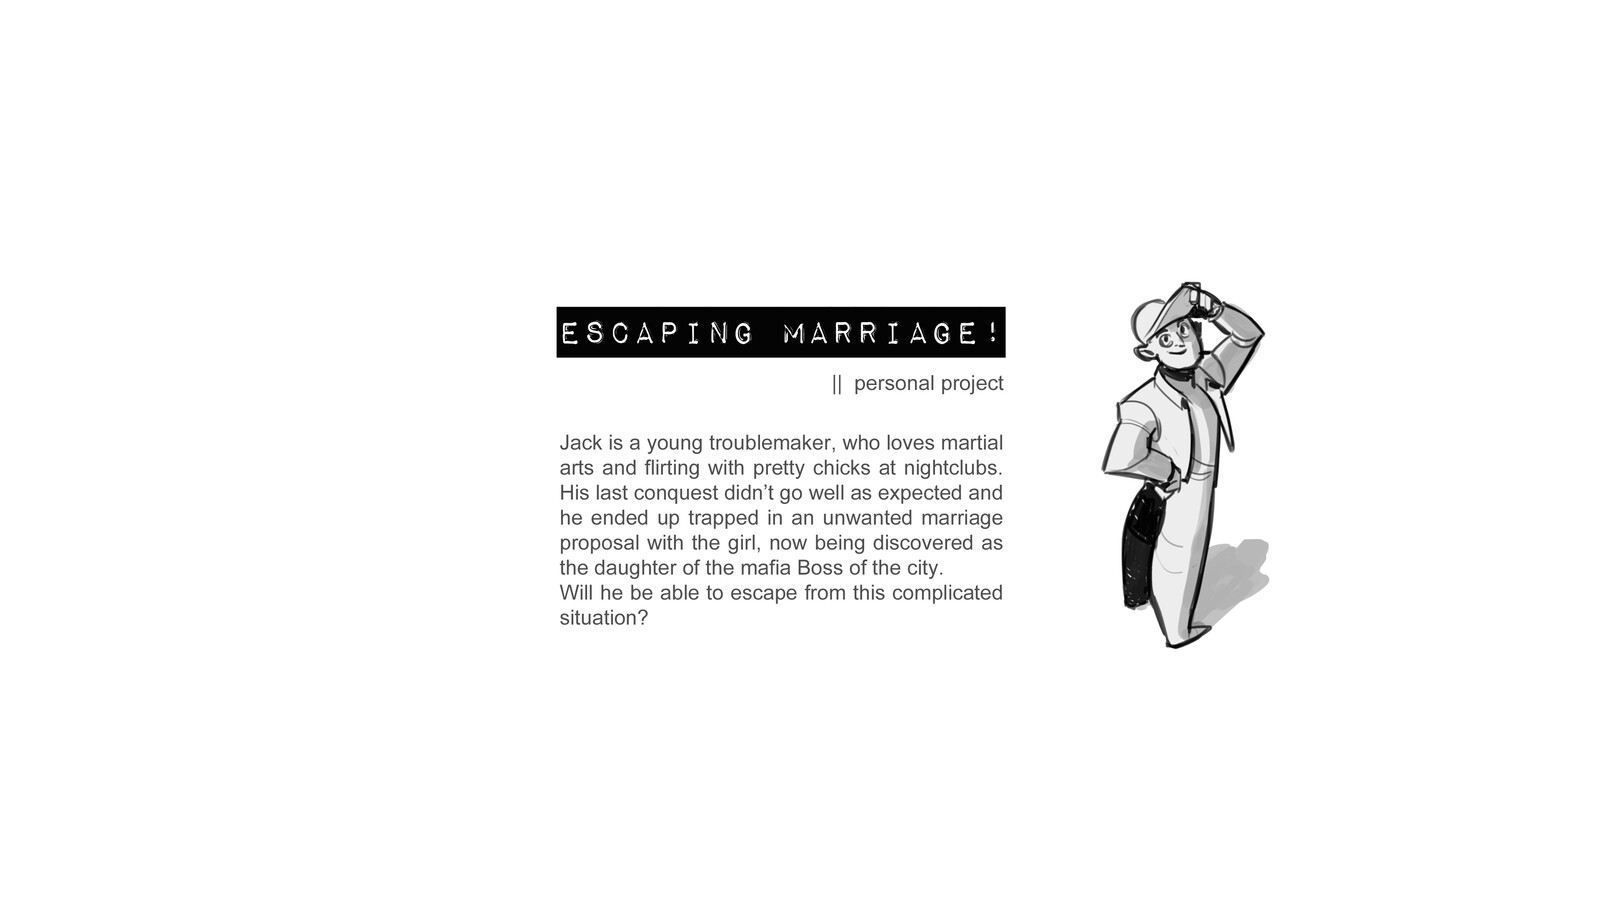 Escaping Marriage!